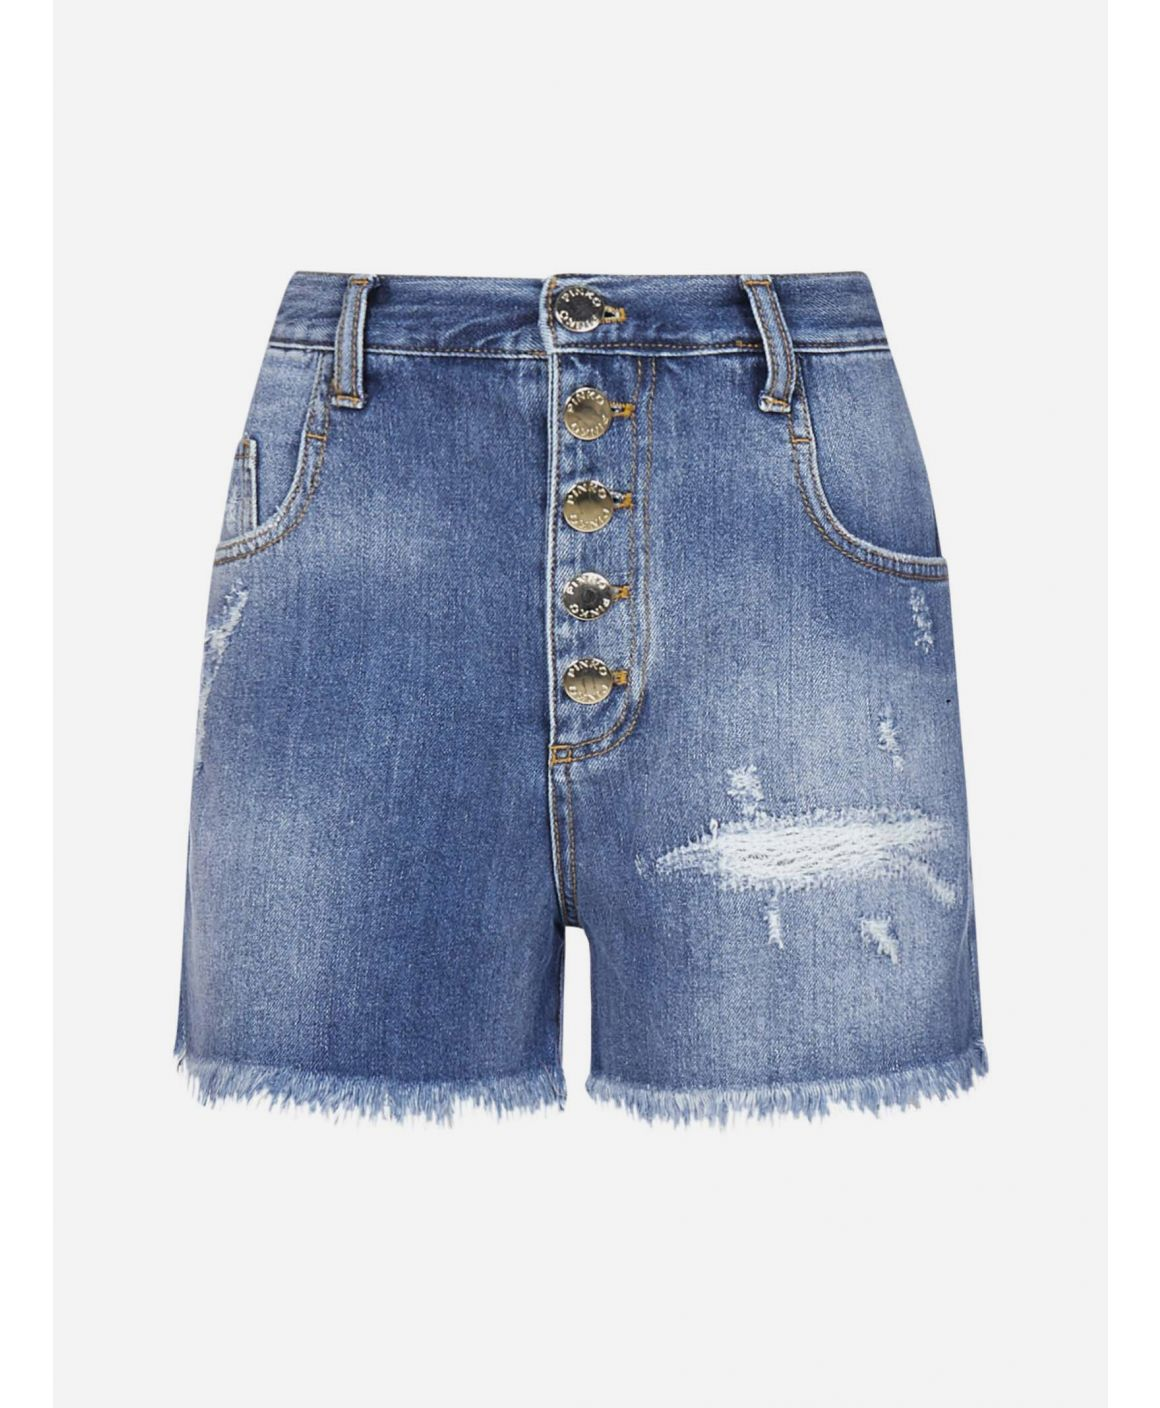 Dido denim shorts